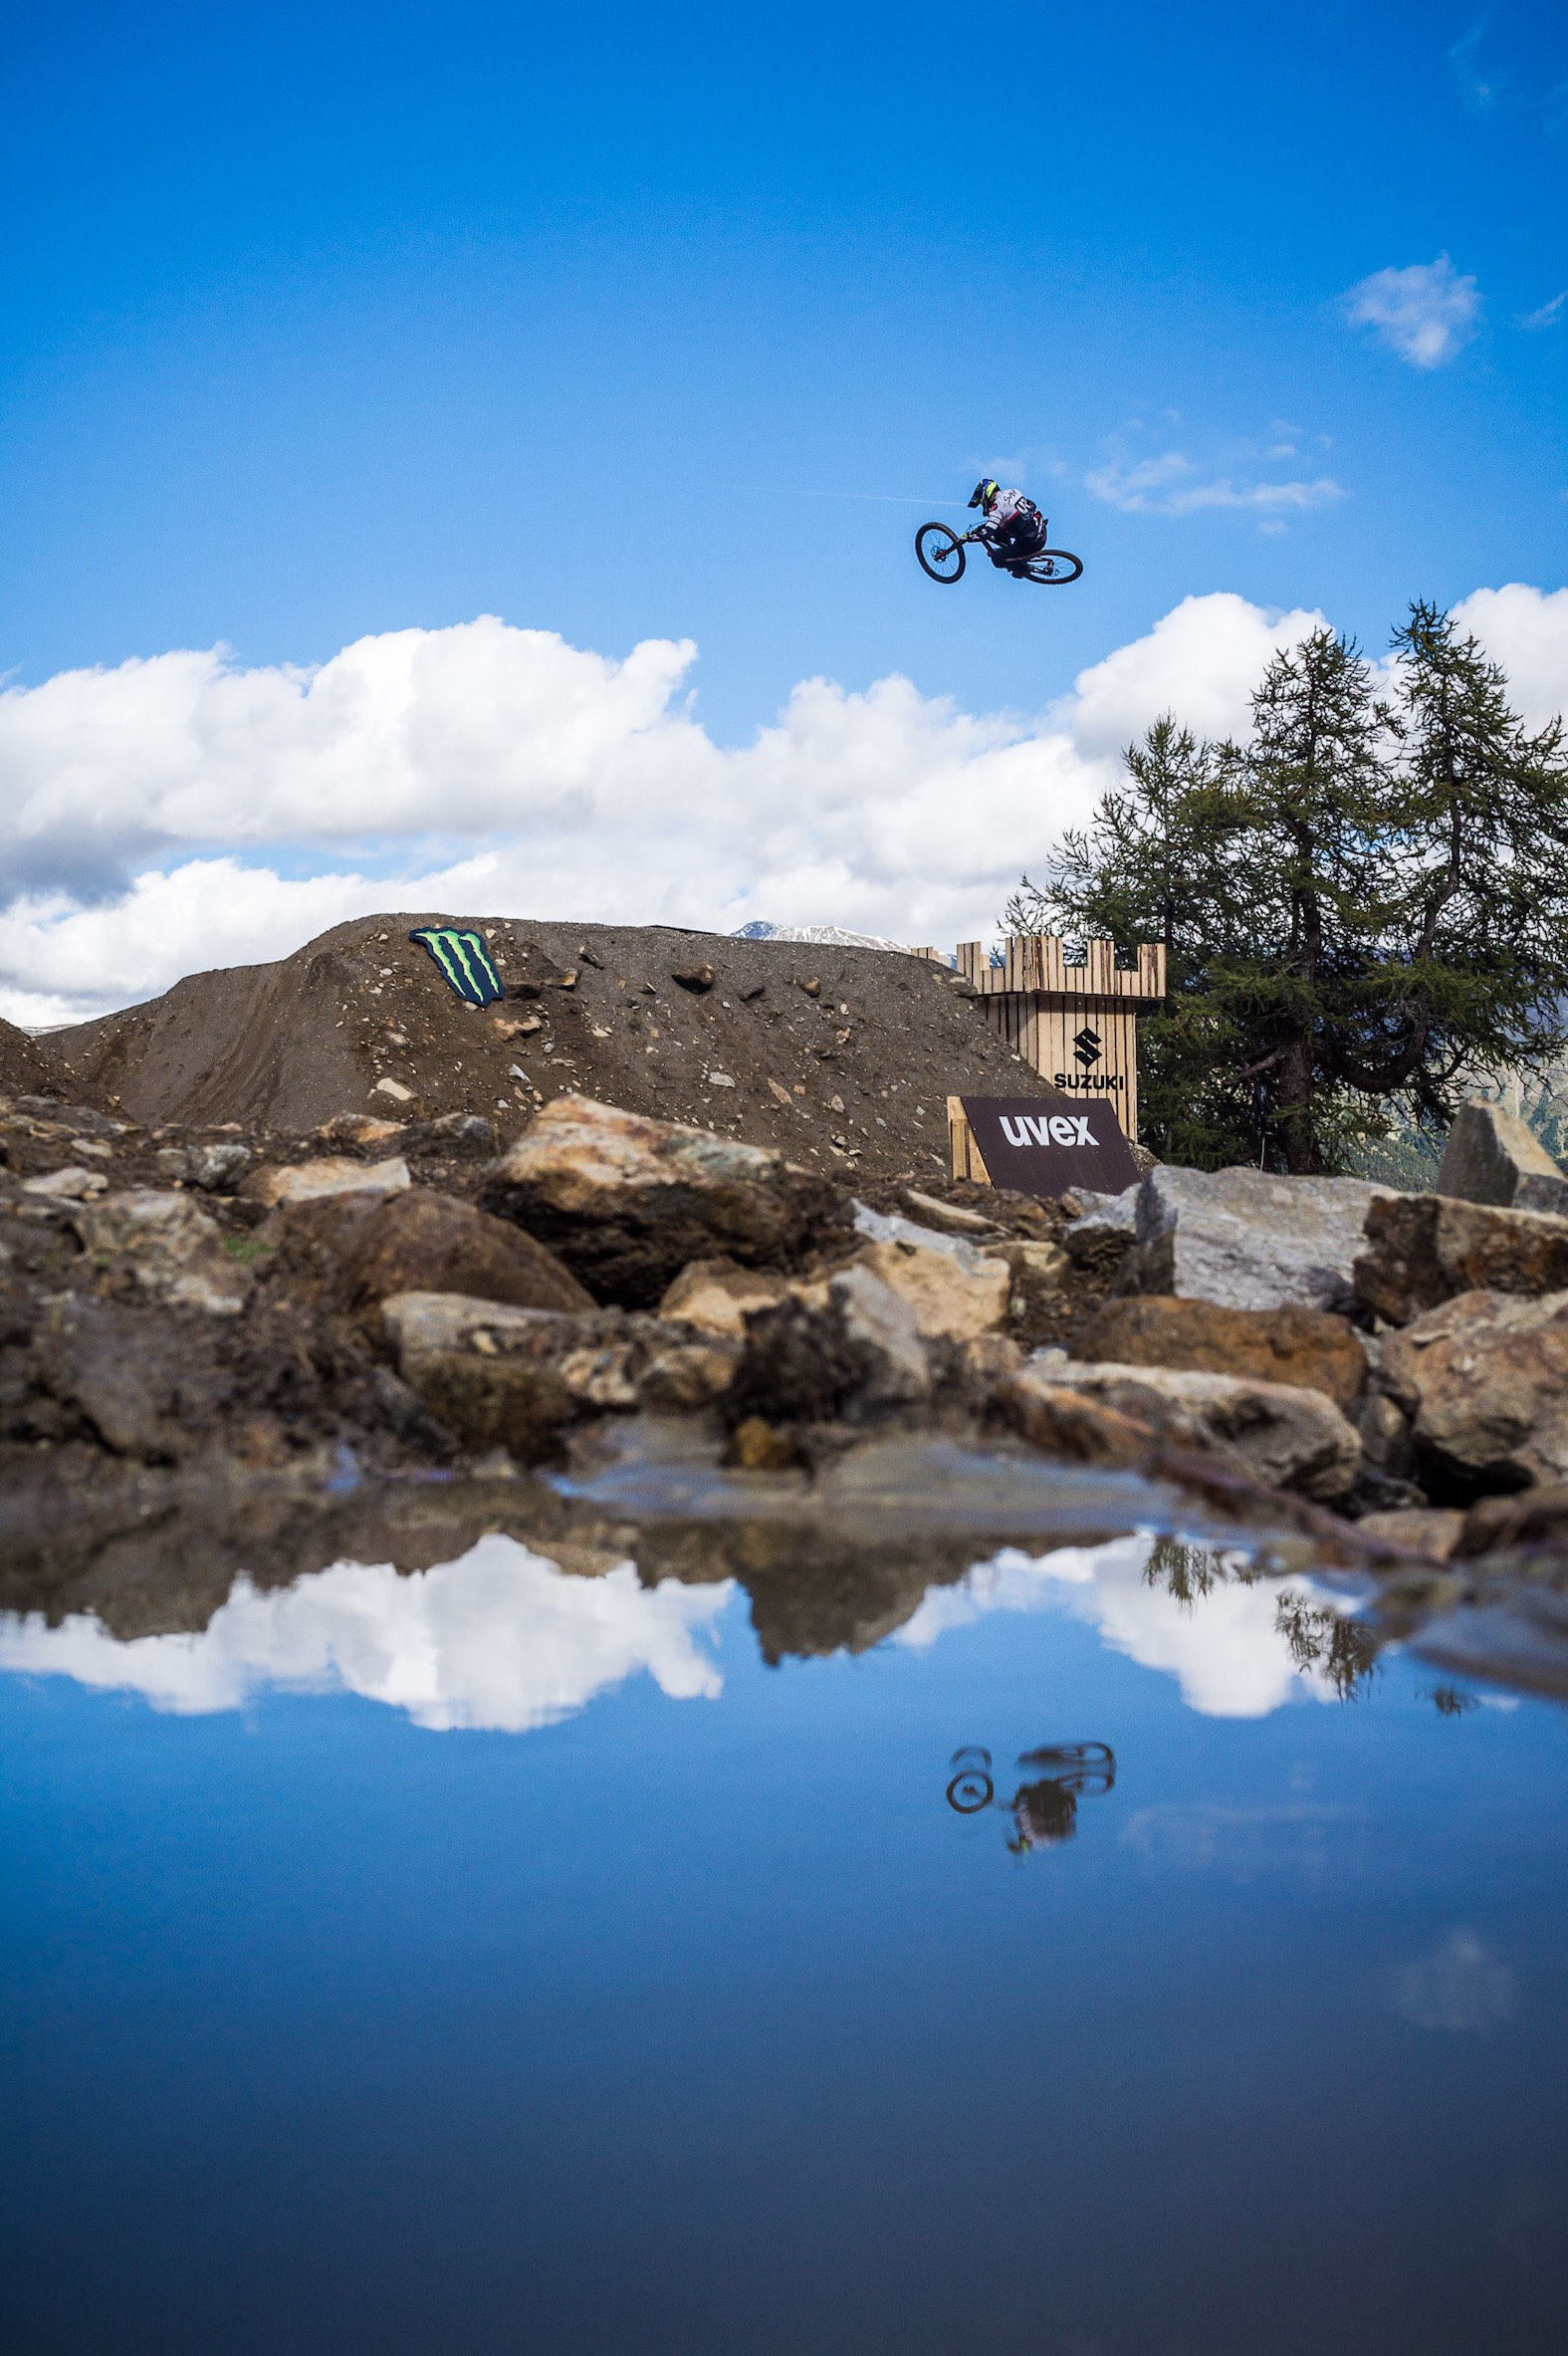 Interview with Freeride MTB rider, Sam Reynolds about Nine Knights 2017